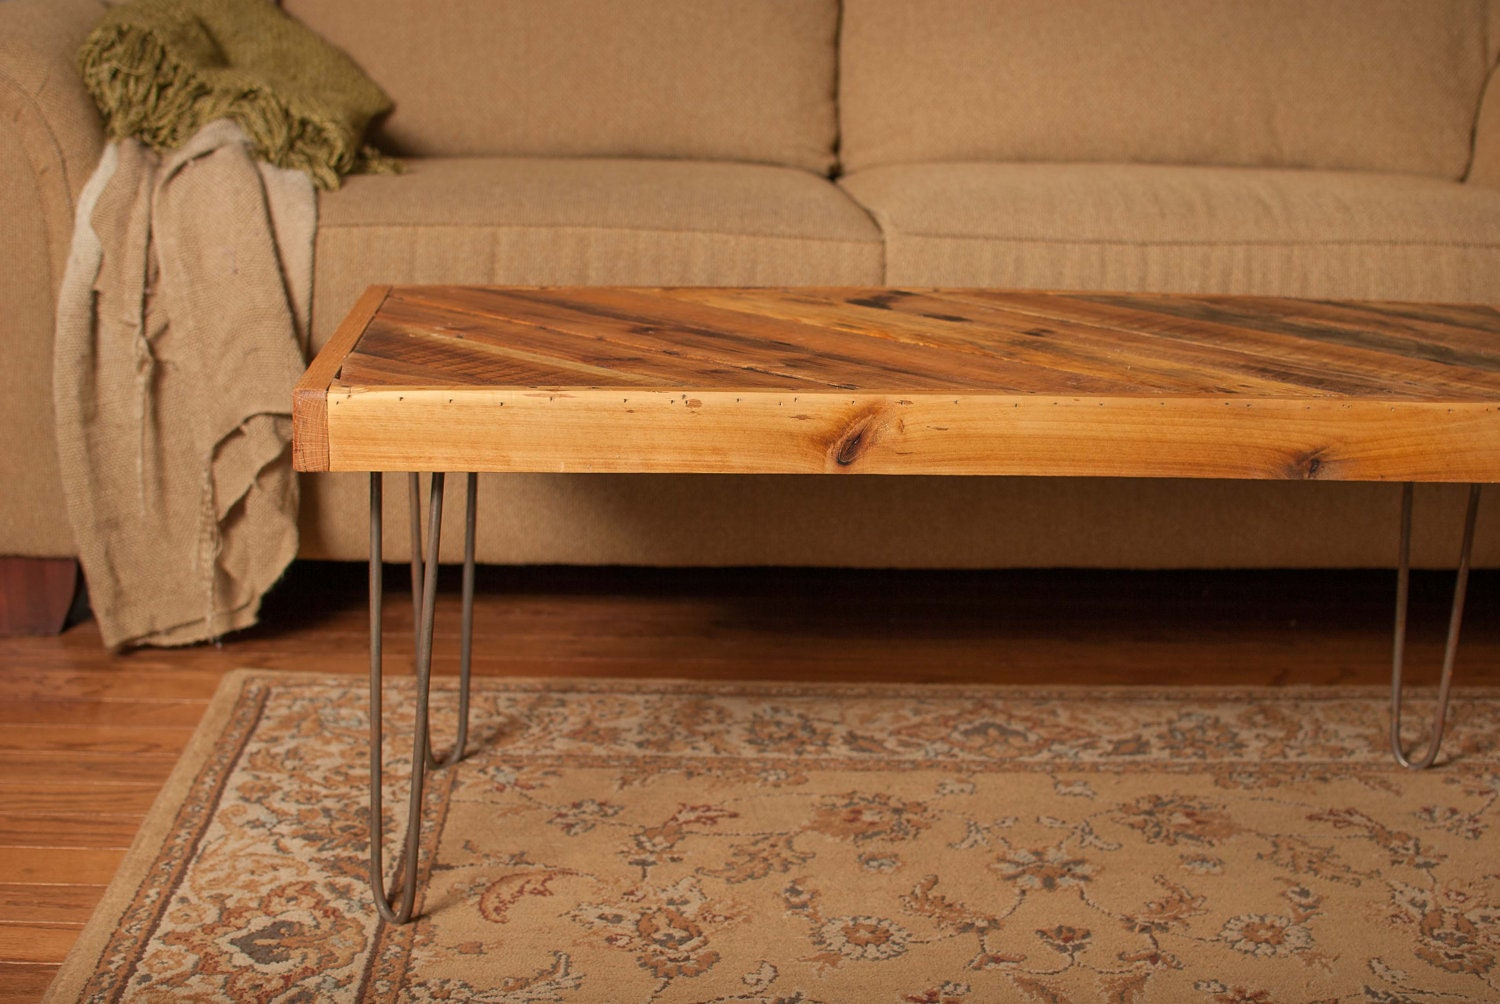 Popular items for reclaimed wood table on Etsy